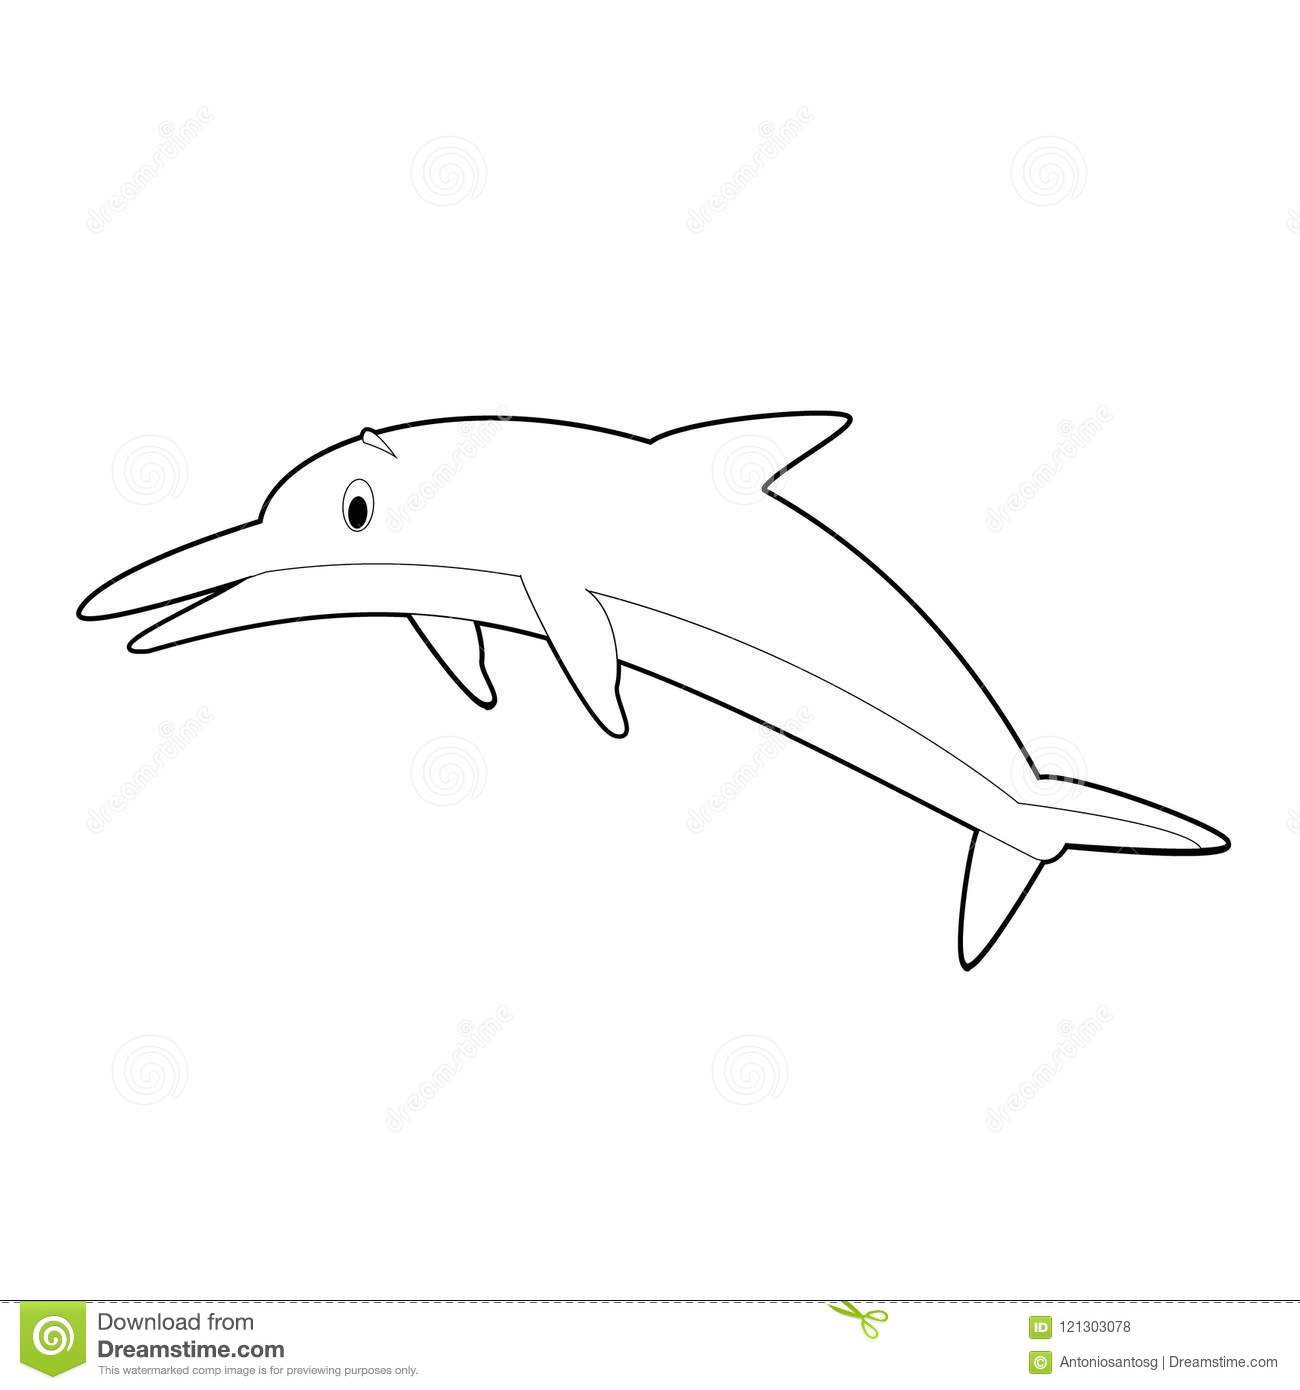 Easy coloring drawings of animals for little kids dolphin vector illustration